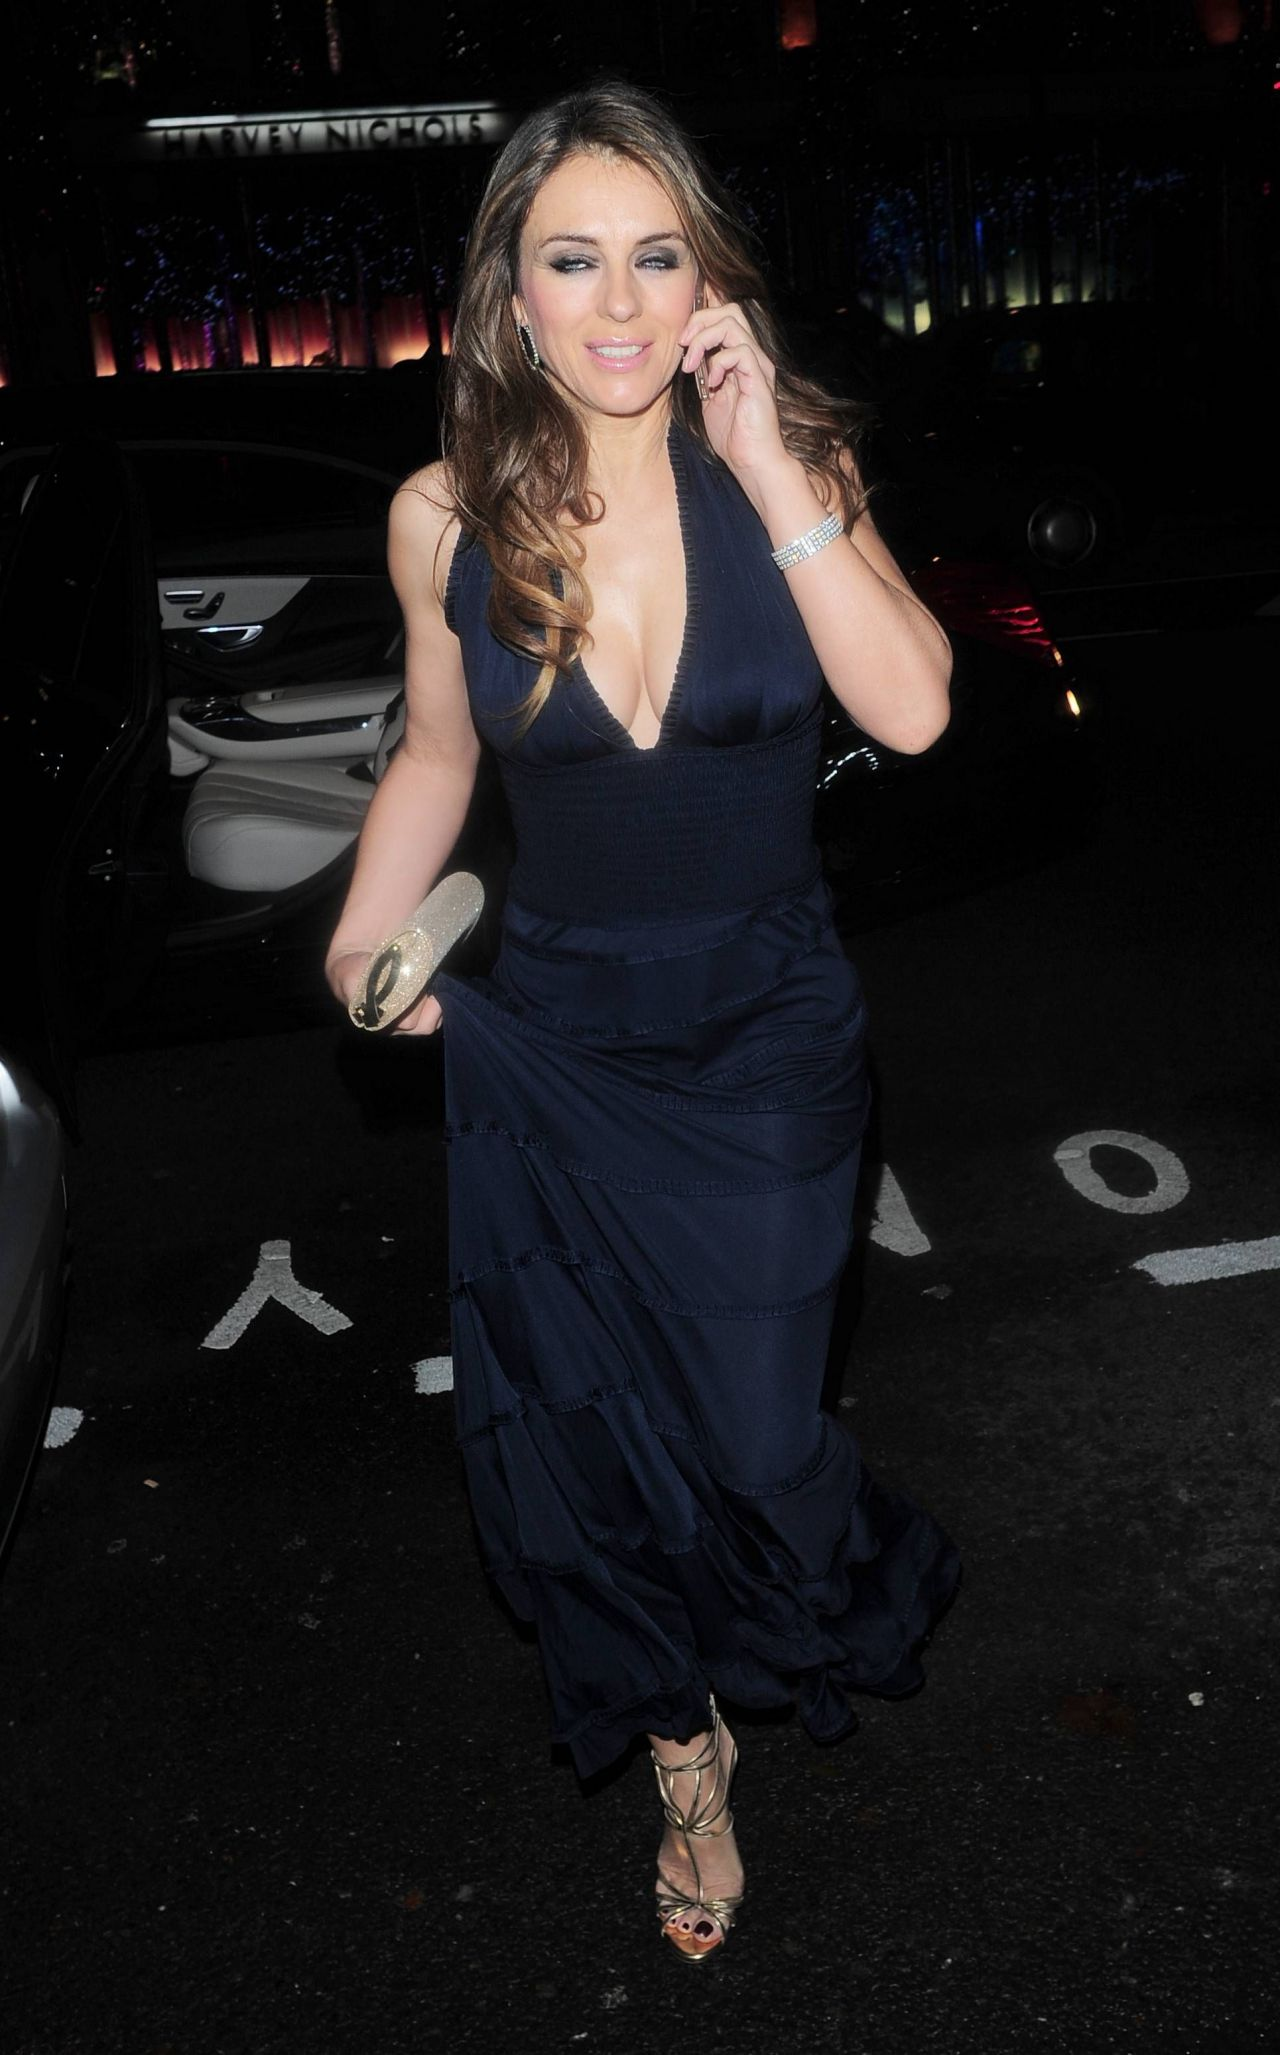 Elizabeth Hurley Night Out Style At Mandarin Oriental